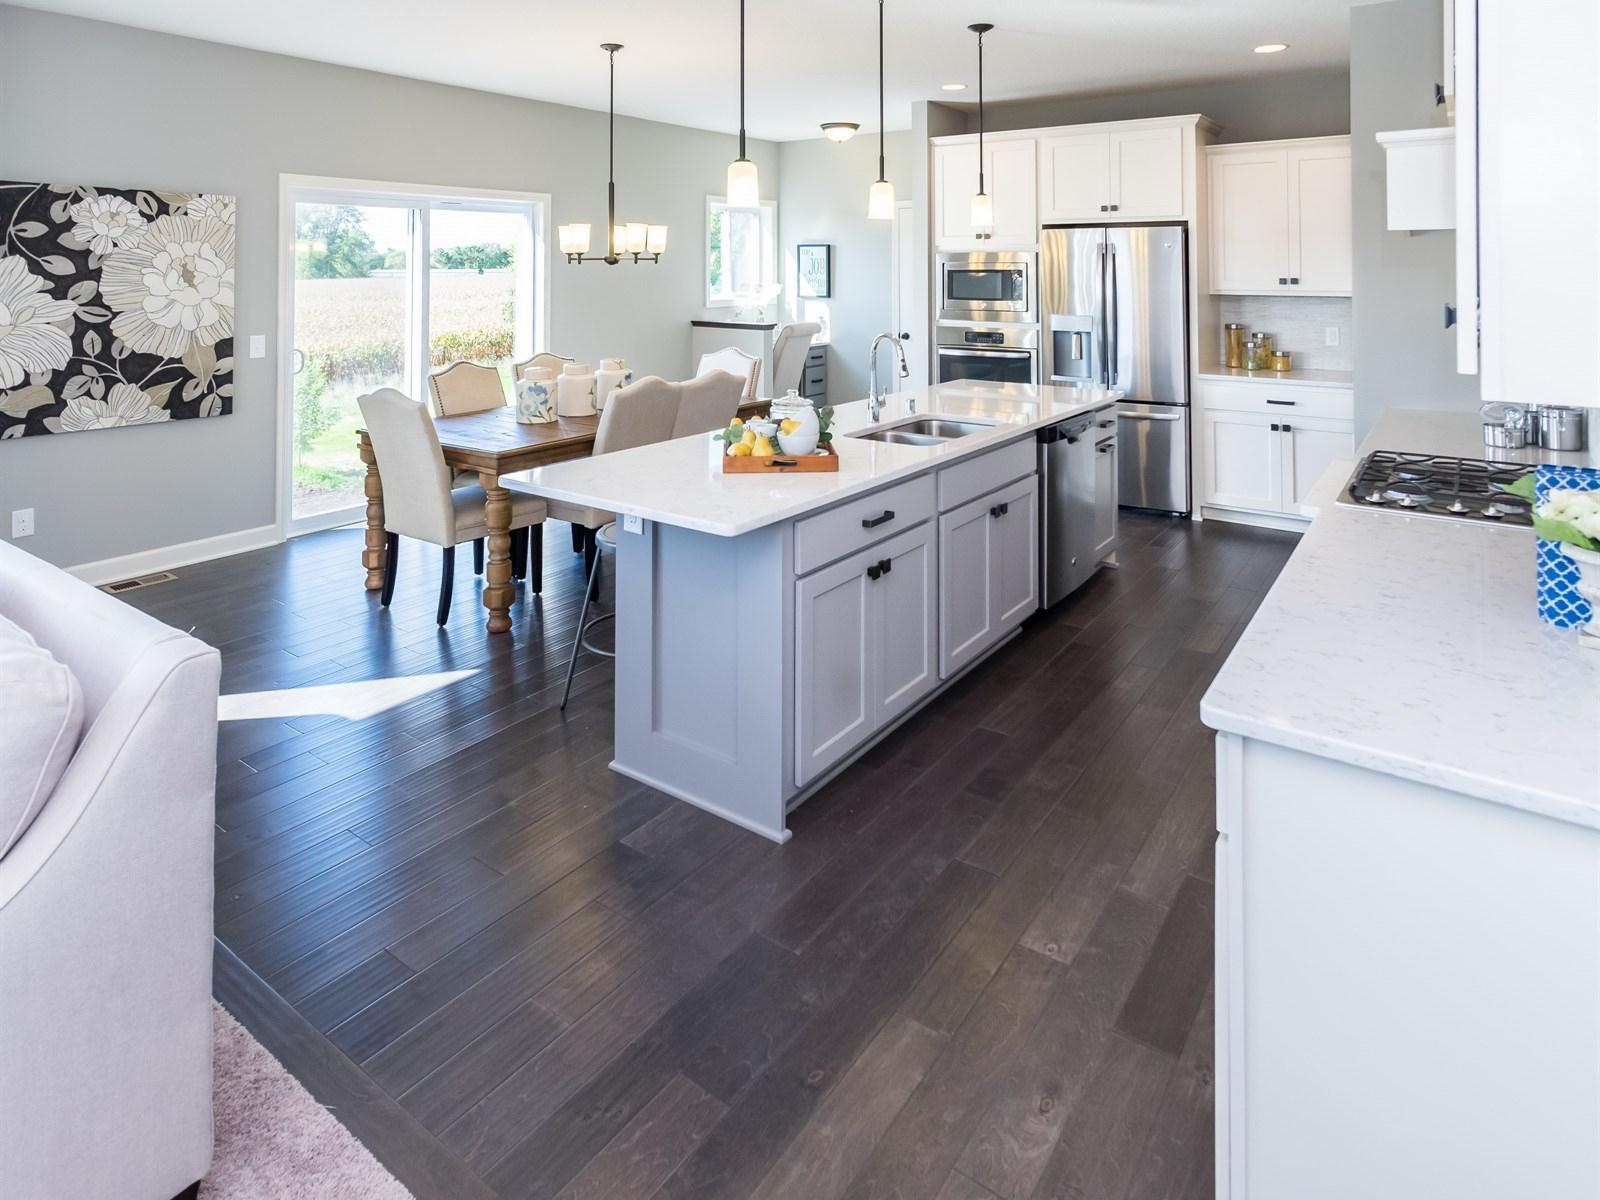 Kitchen featured in The Eastridge  By Brandl Anderson in Minneapolis-St. Paul, MN